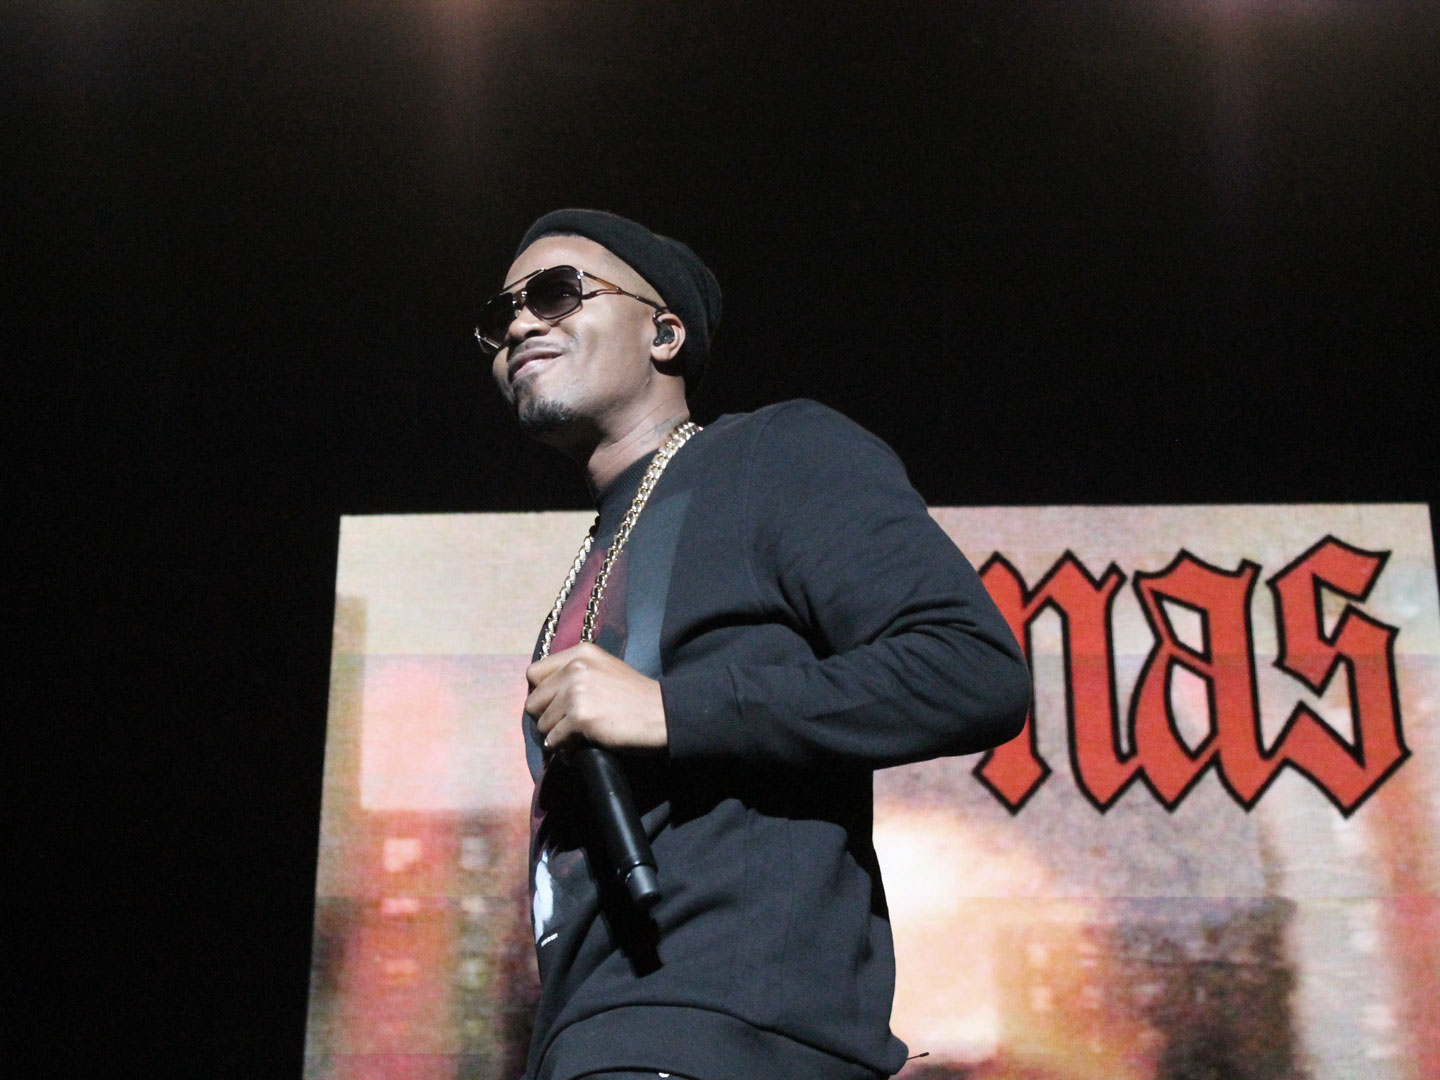 Nas performing live at the Fox Theater in Oakland, California